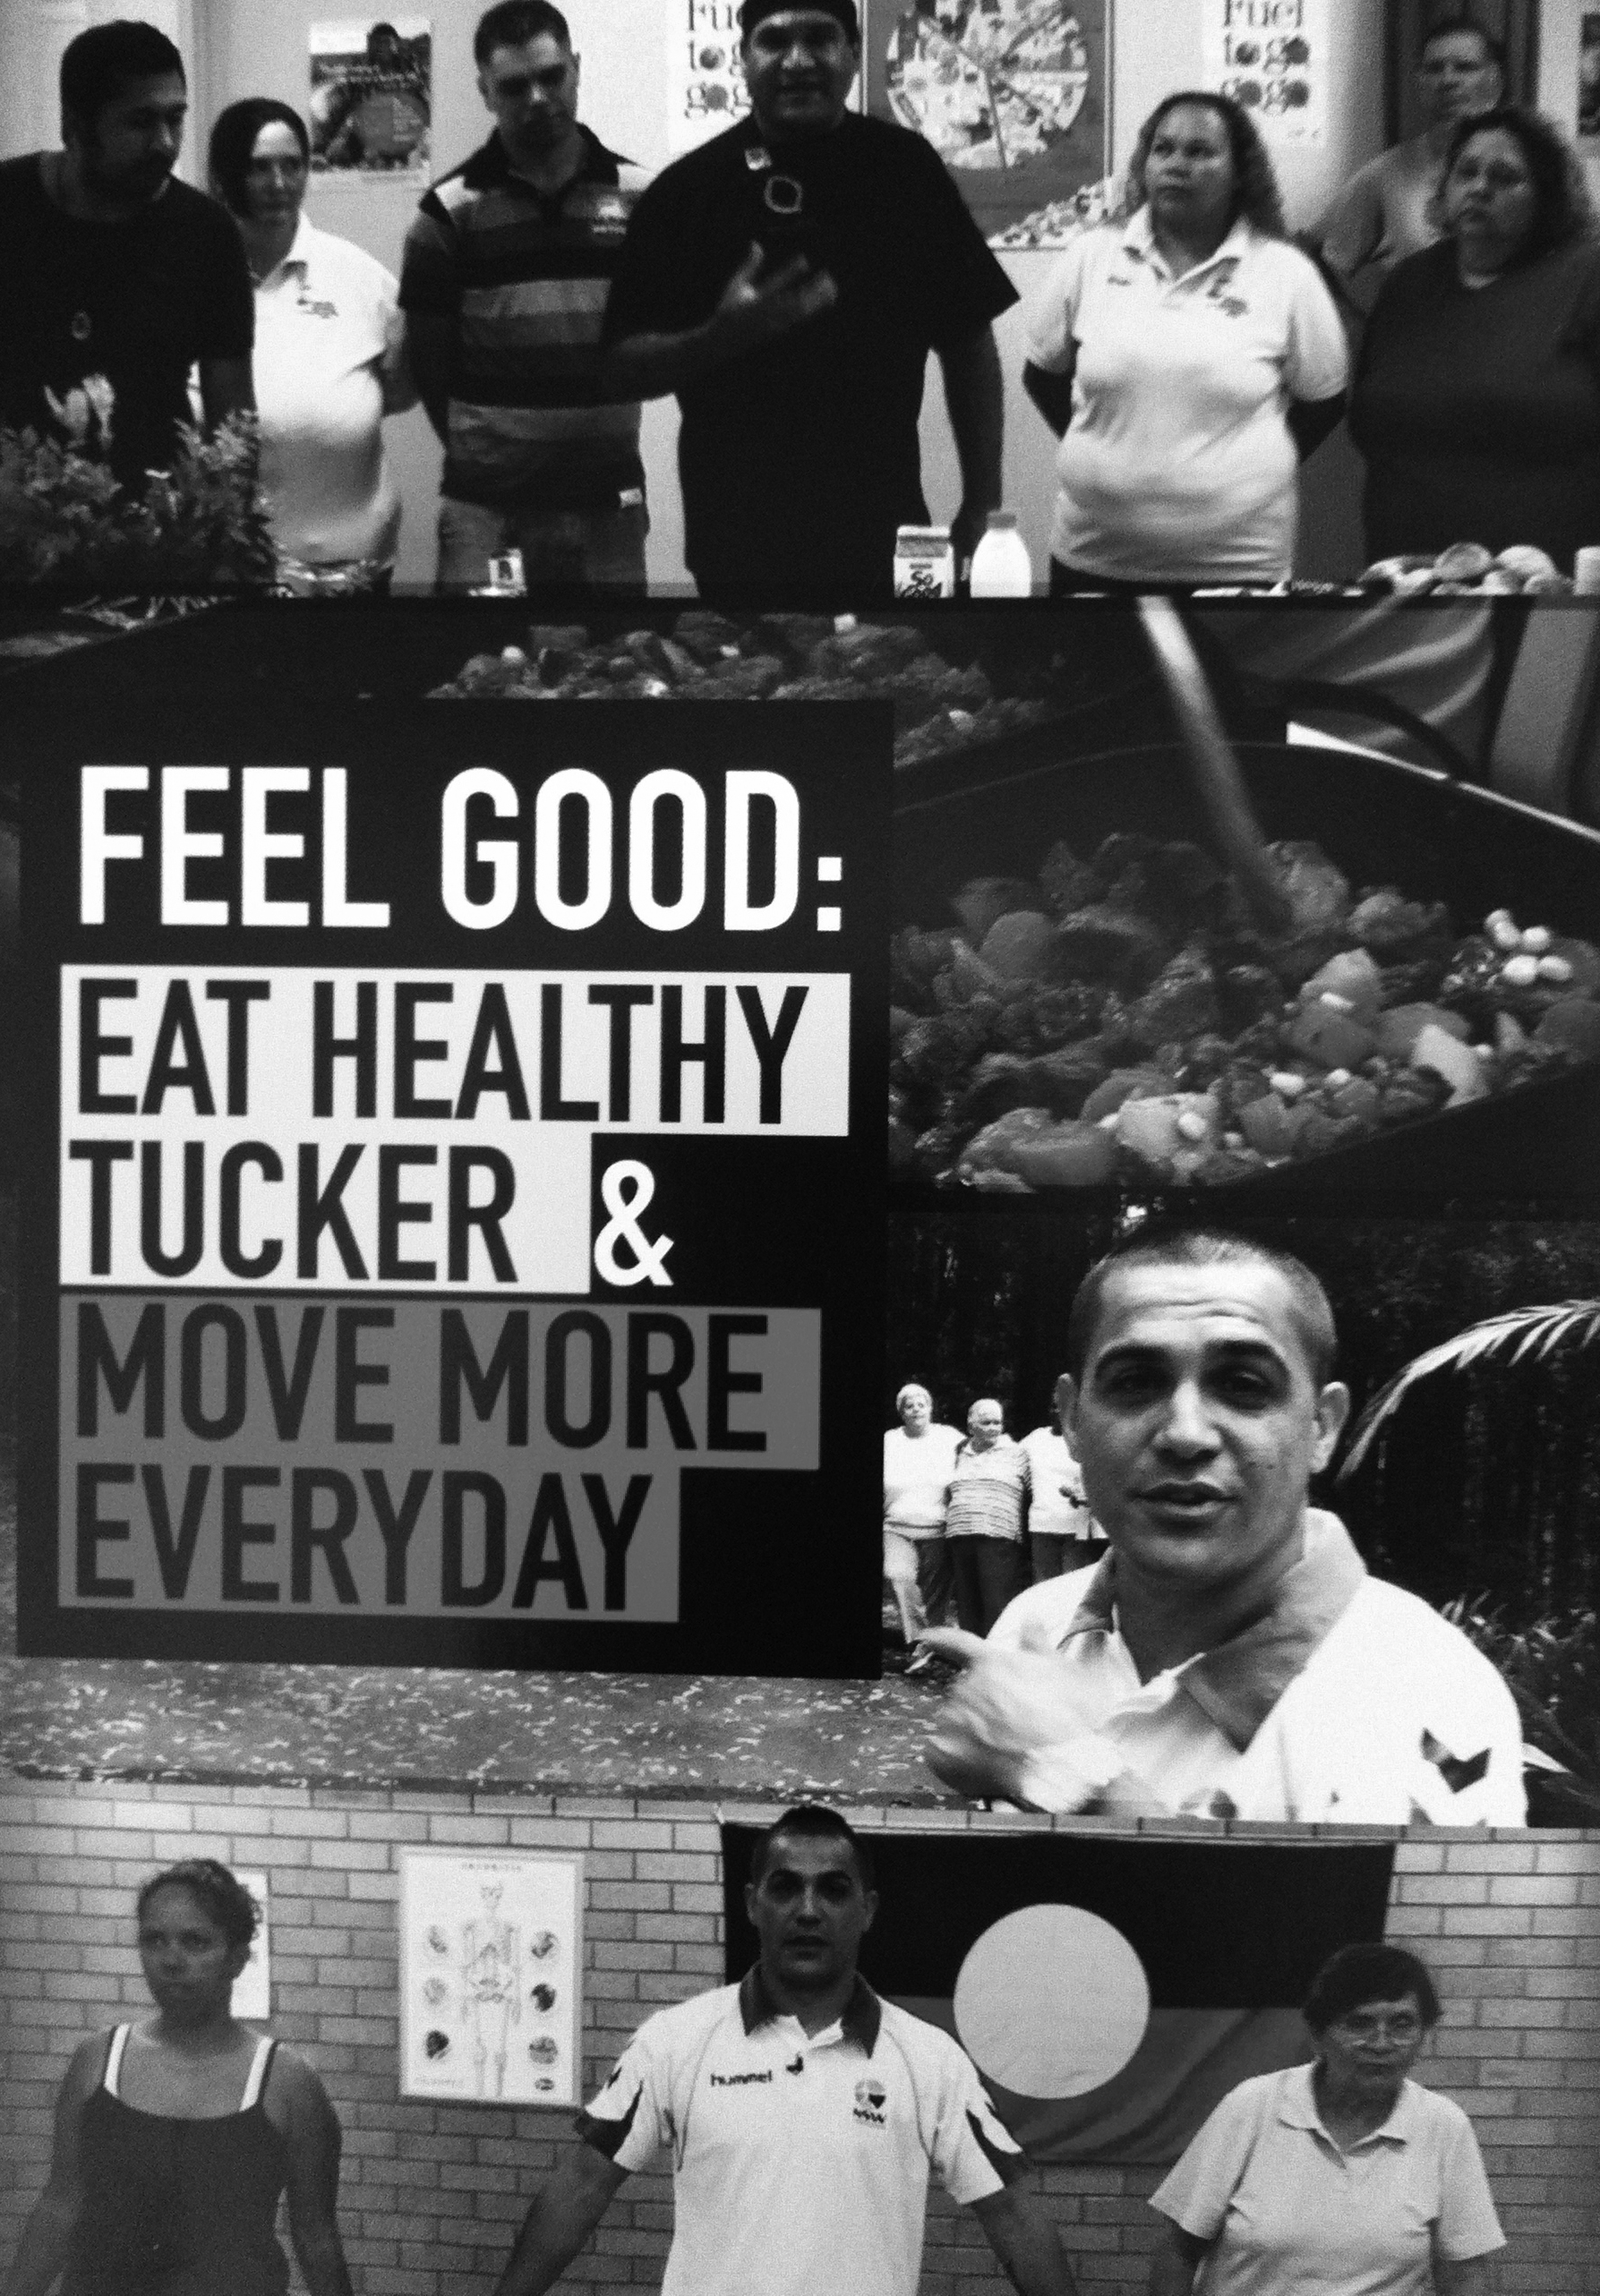 Feel good: eat healthy tucker & move more everyday